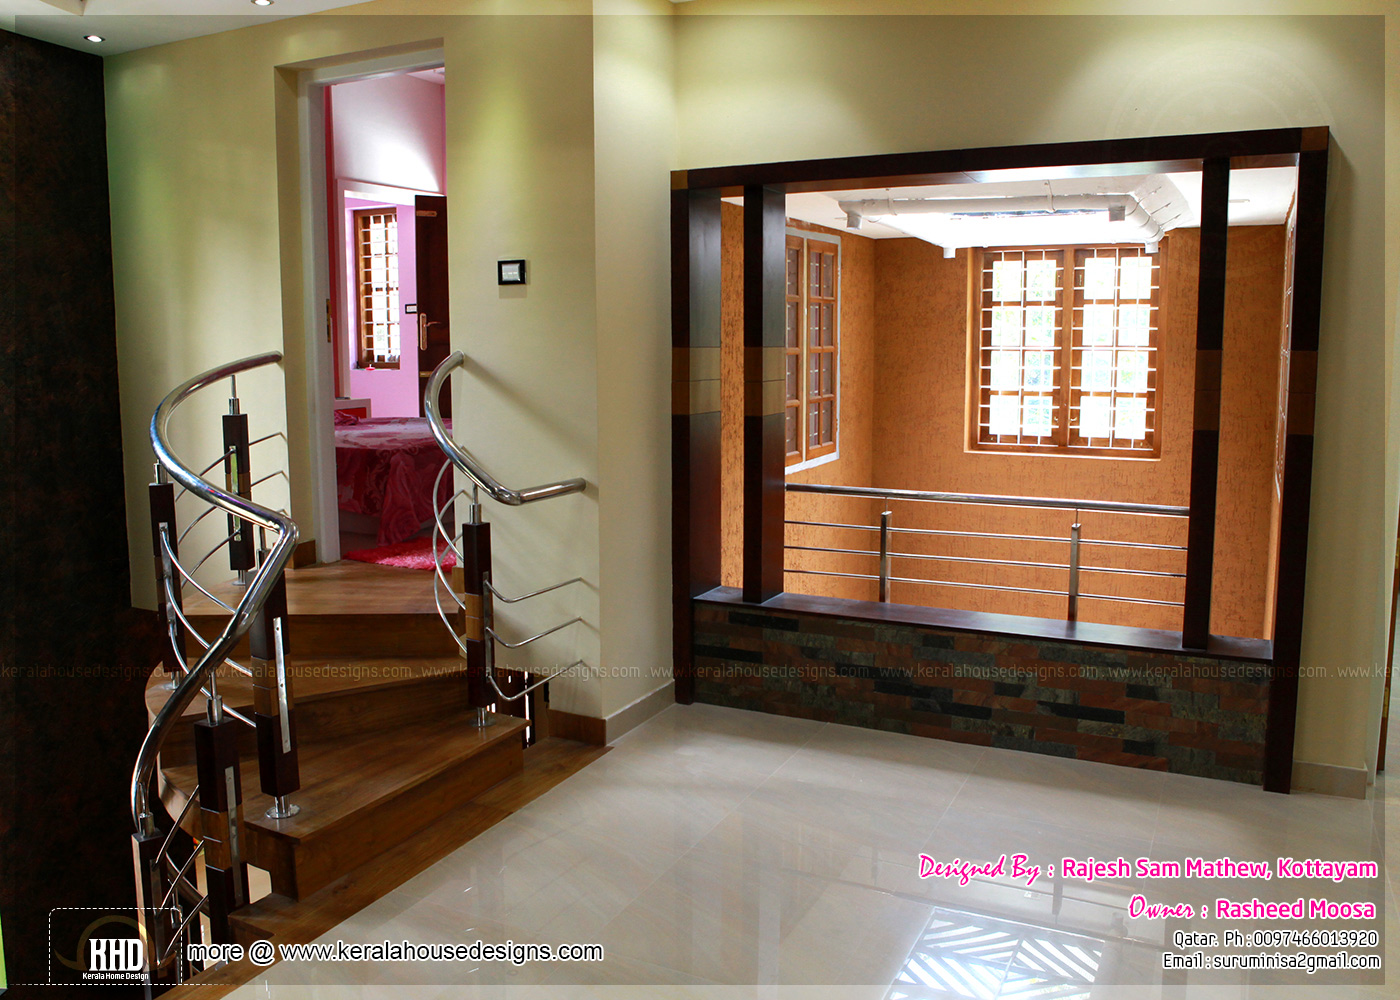 Kerala interior design with photos kerala home design for Interior designs houses pictures